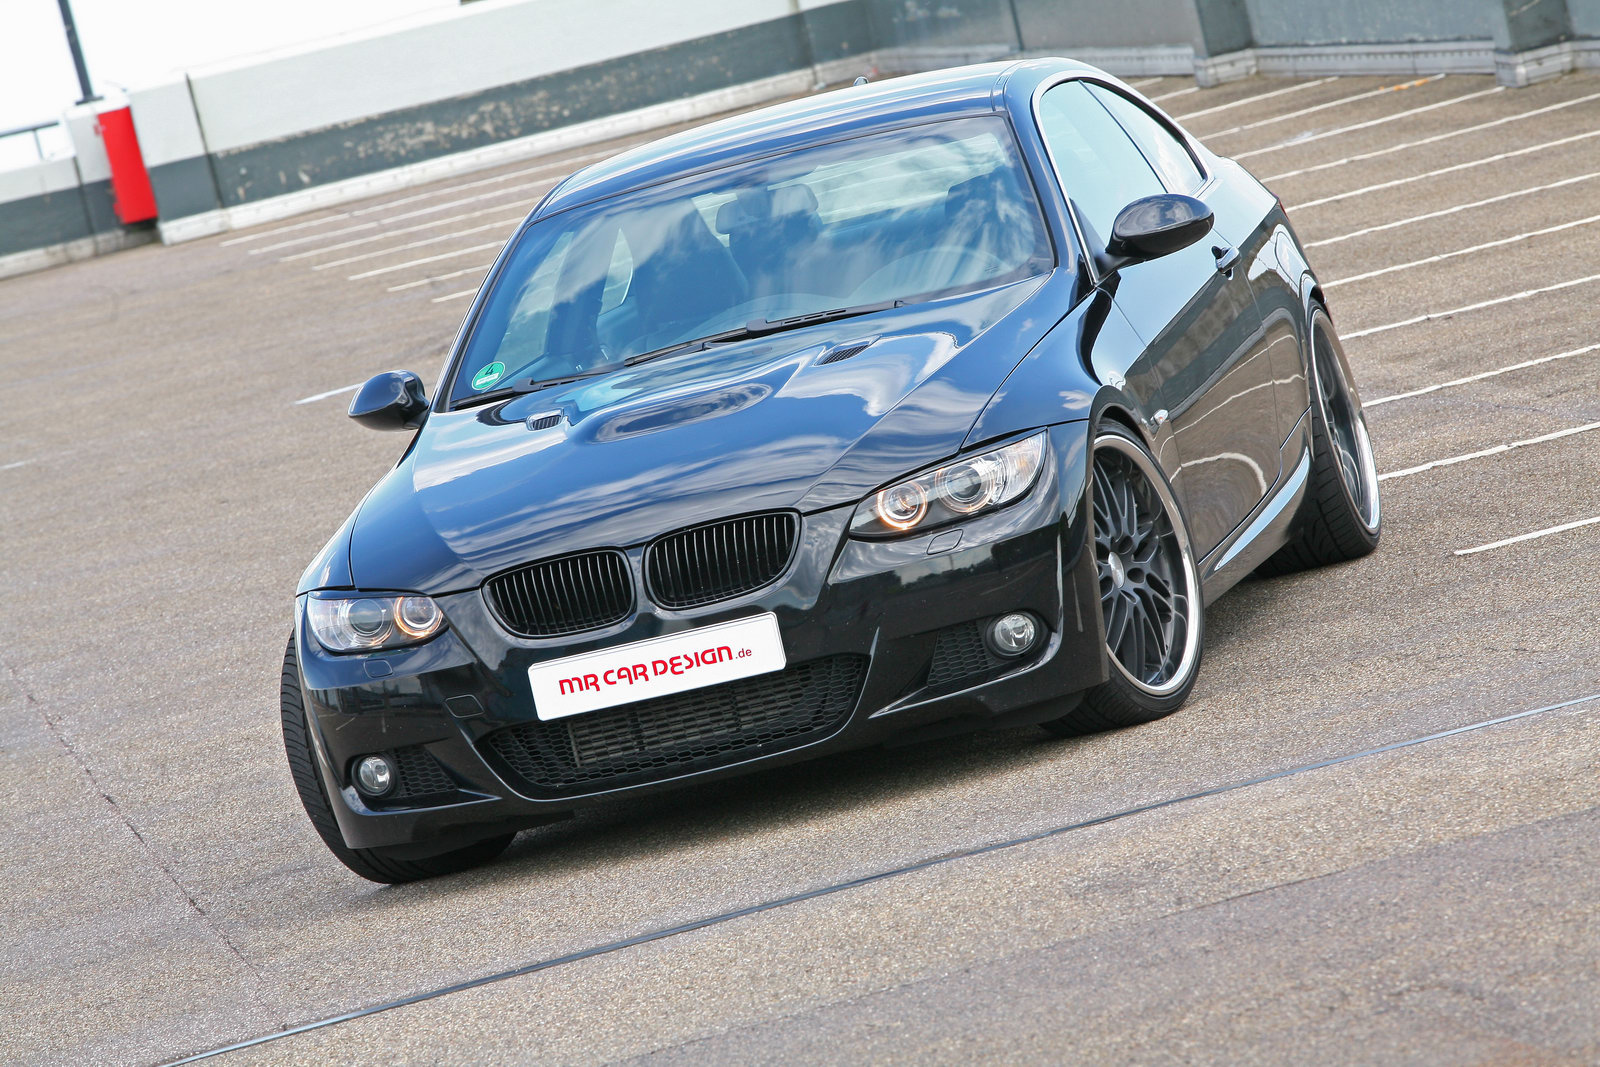 BMW 335i MR Car Design